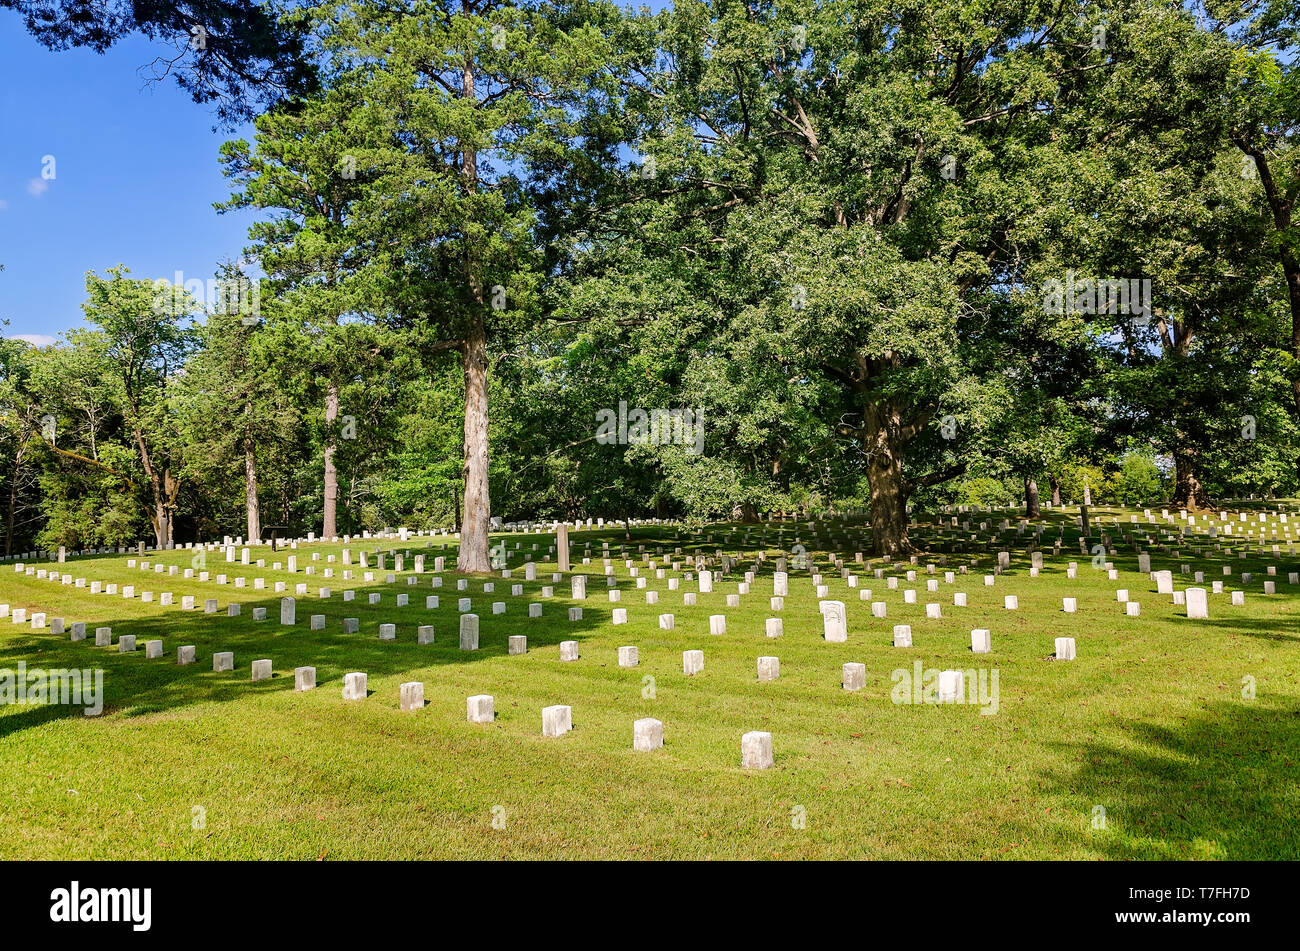 Headstones mark Civil War soldiers' graves at Shiloh National Cemetery in Shiloh National Military Park, Sept. 21, 2016, in Shiloh, Tennessee. - Stock Image